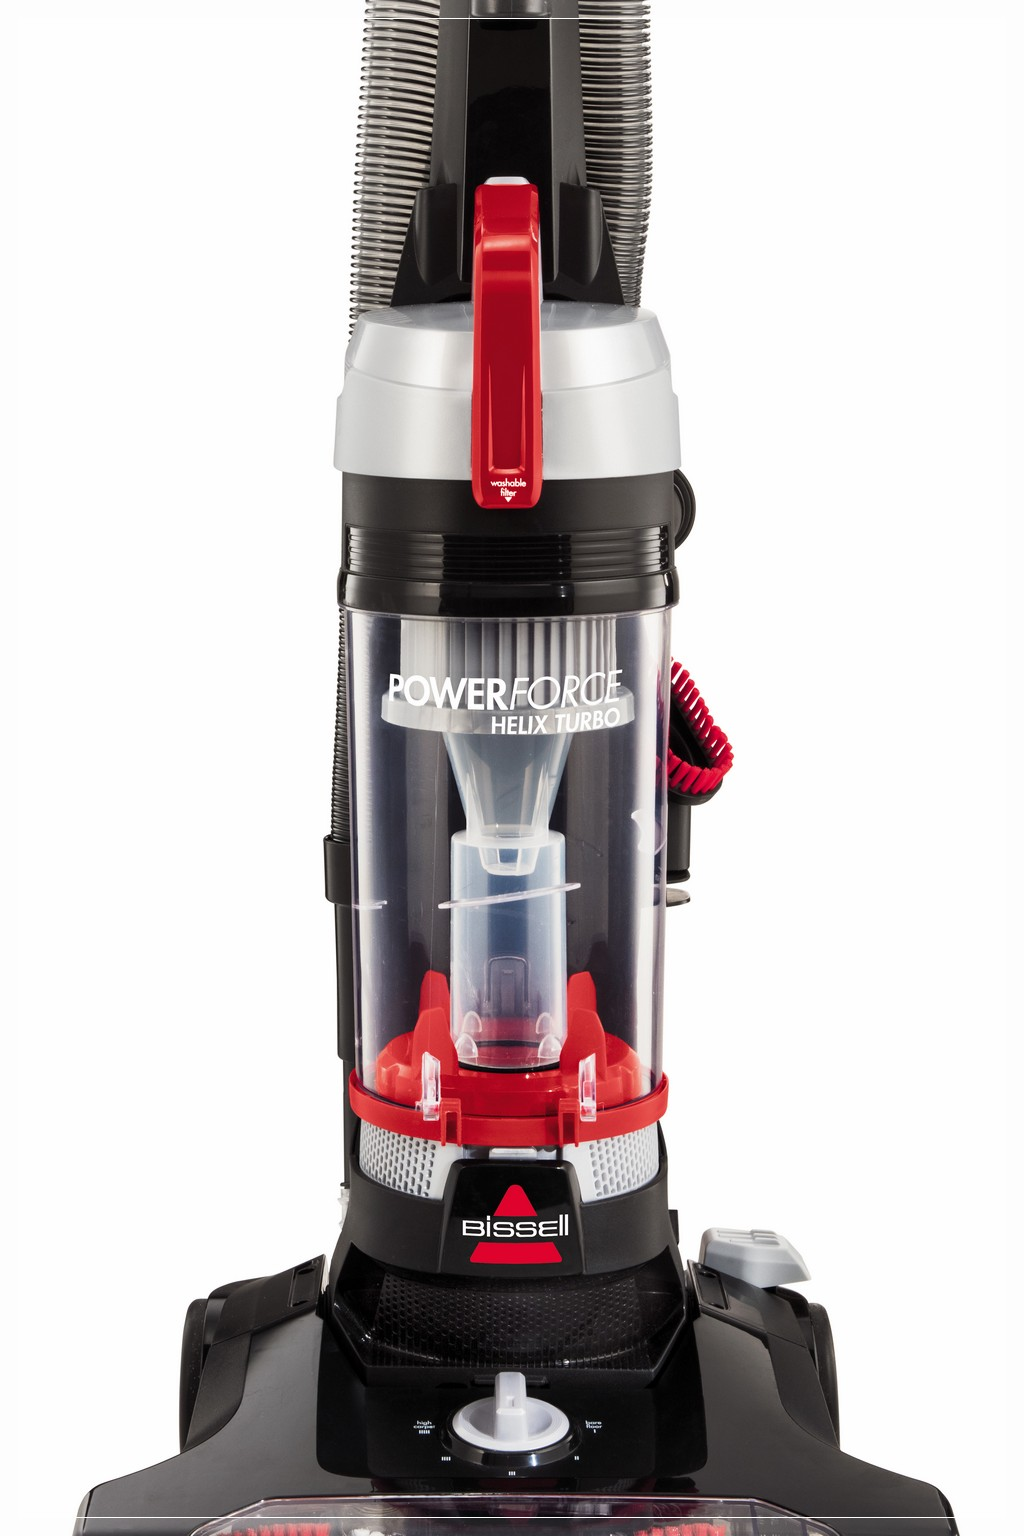 bissell cleanview helix vacuum instructions